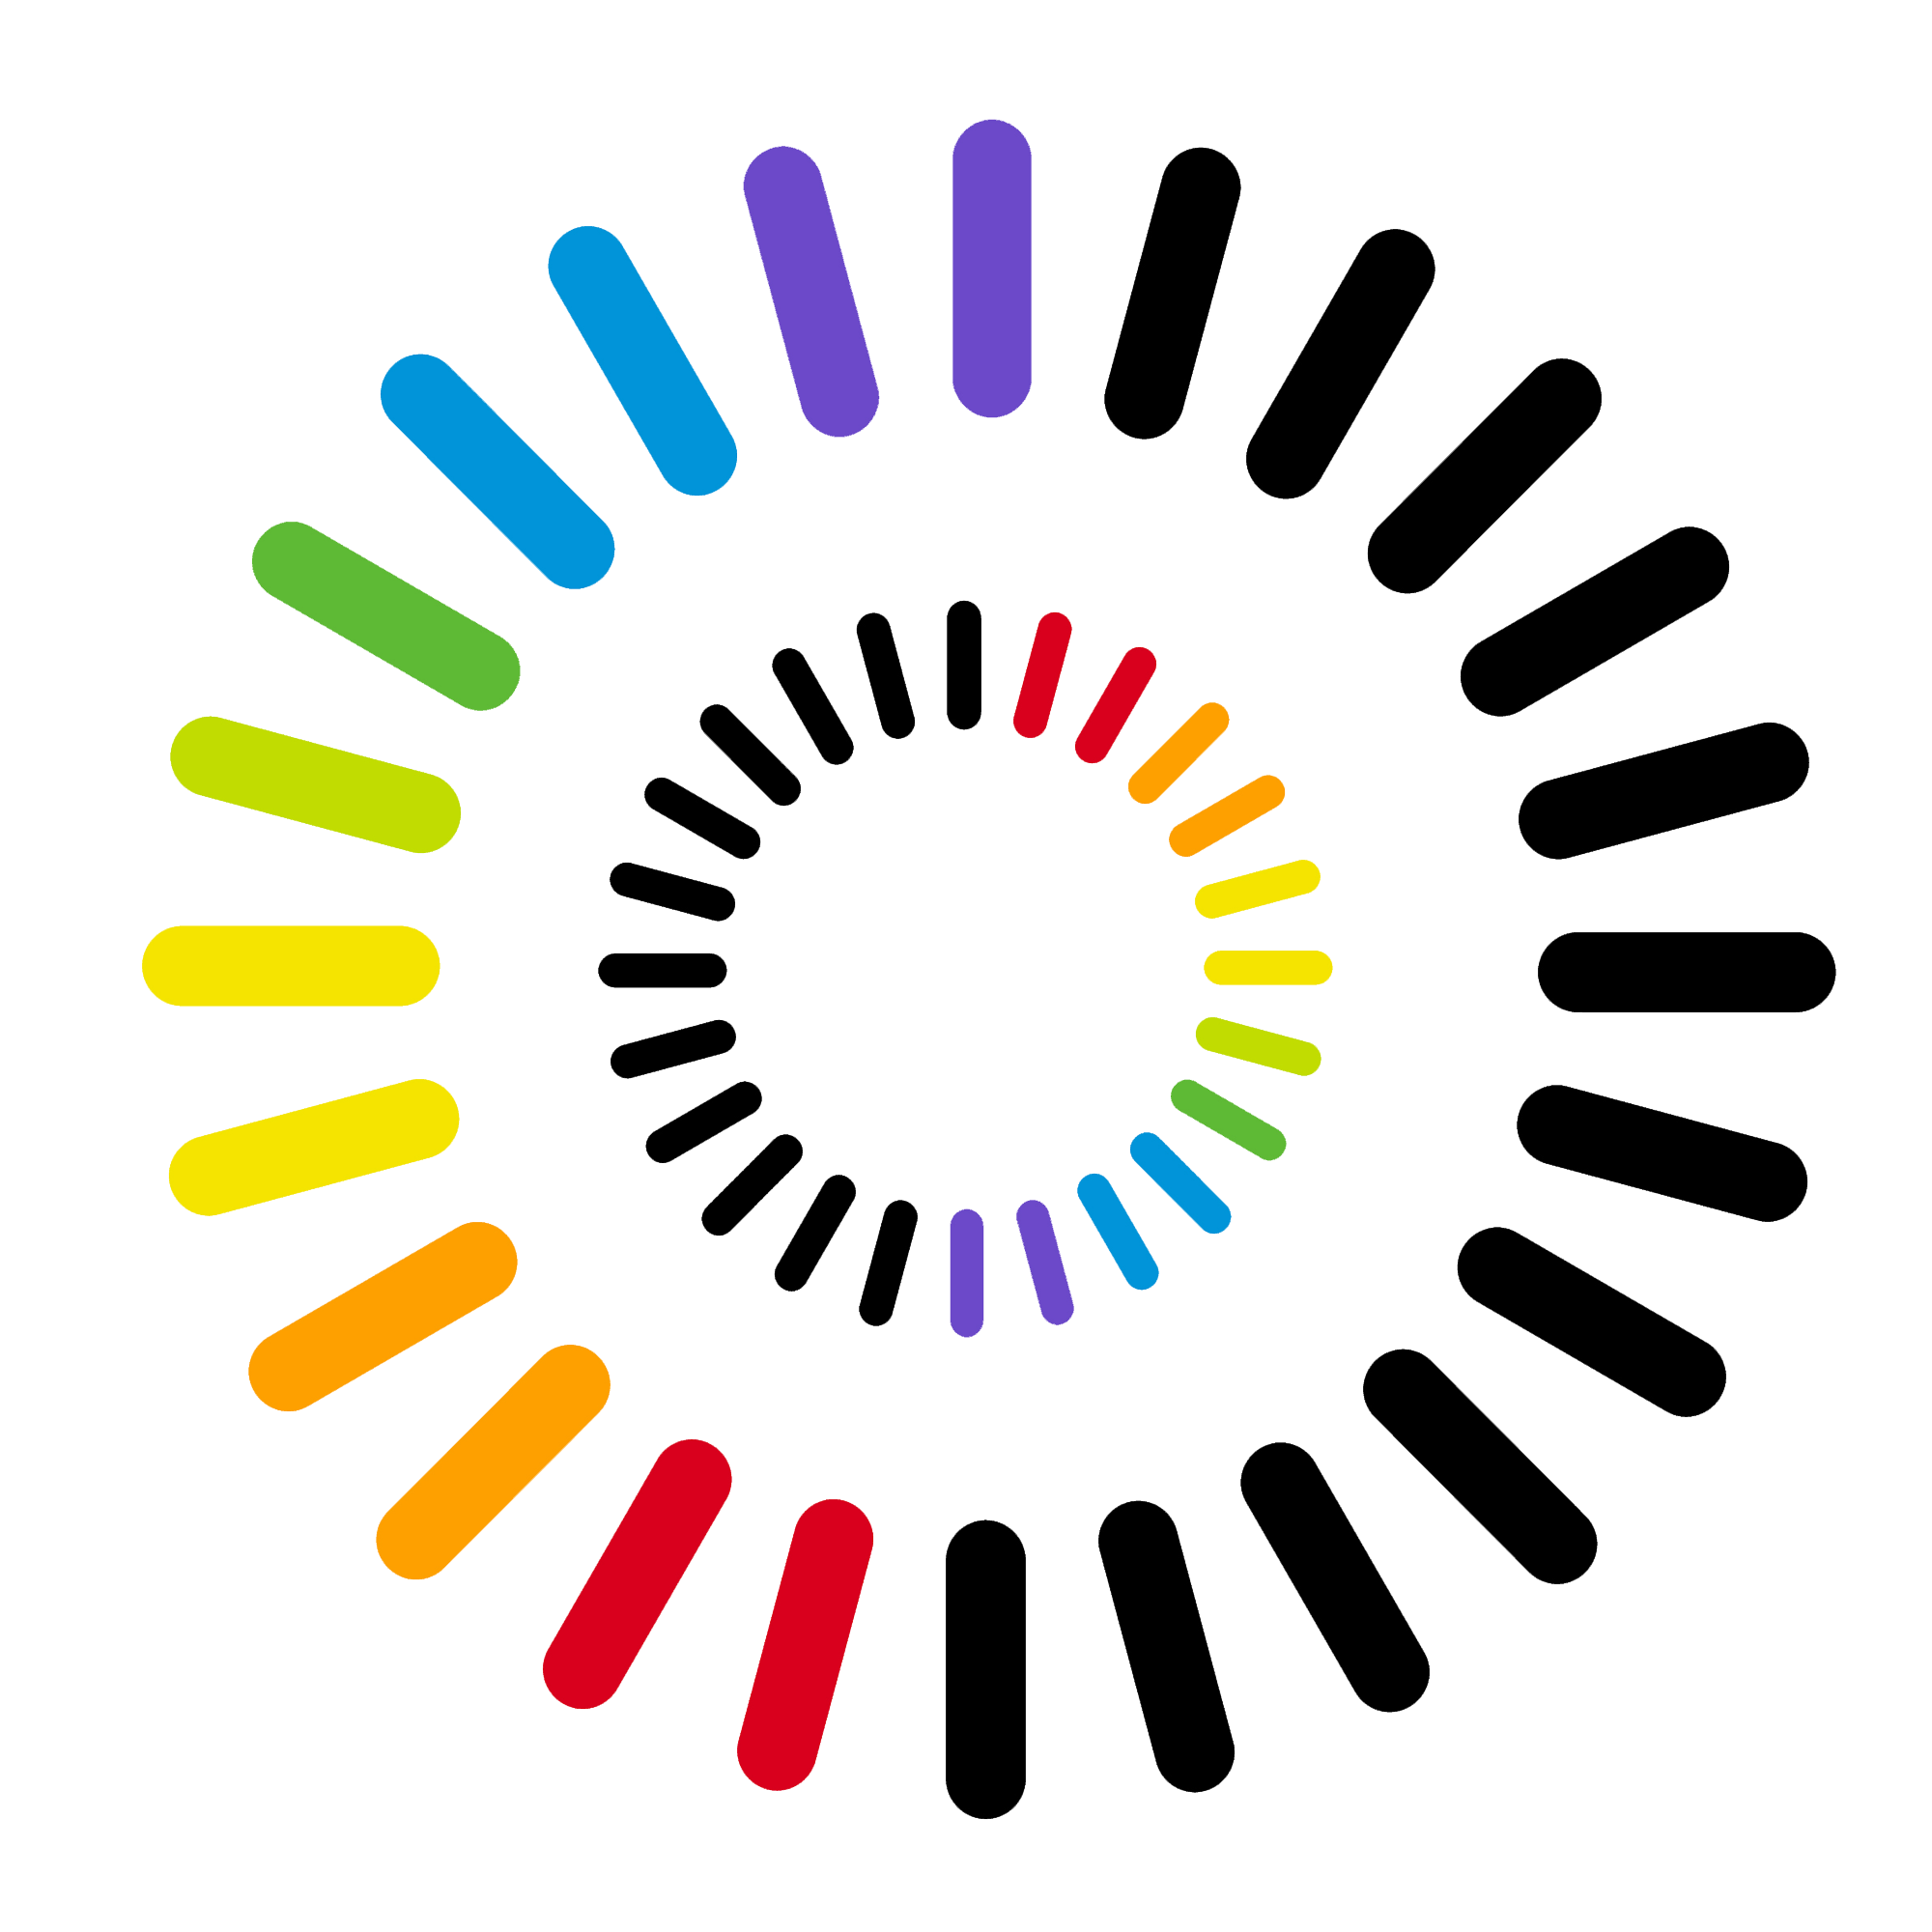 Logo_of_the_International_Colour_Day-1.png